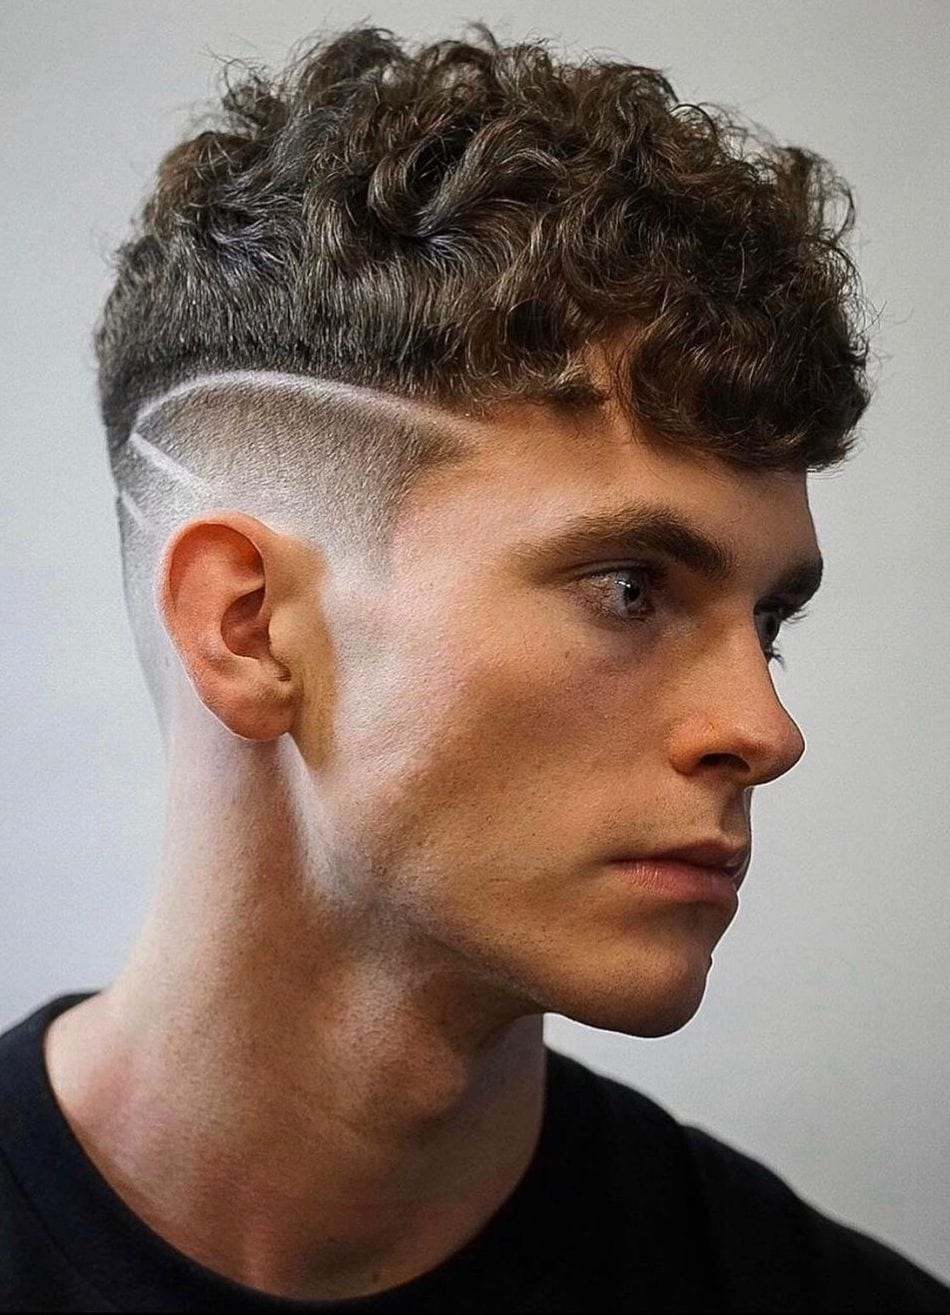 Undercut Curled Slit Shaved High Fade